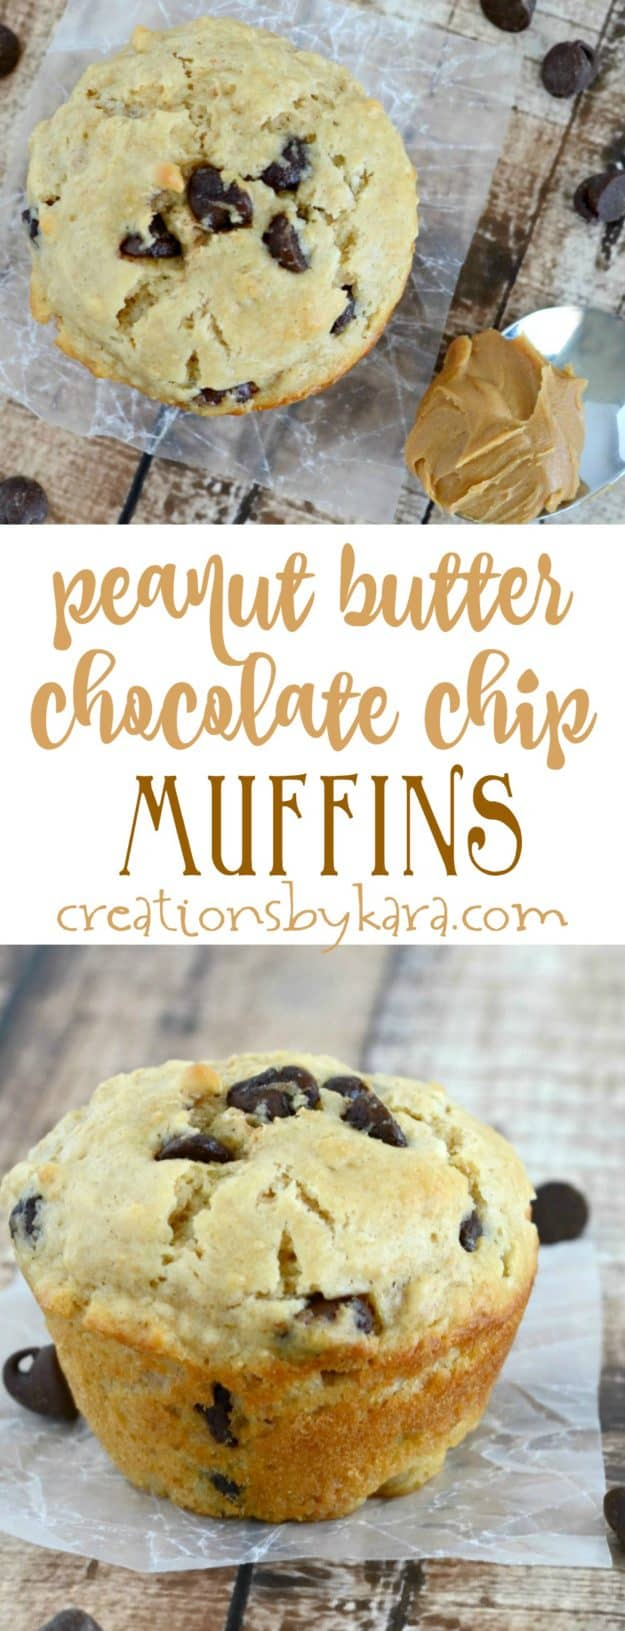 These fluffy Peanut Butter Chocolate Chip Muffins are so tasty! A perfect muffin recipe for peanut butter and chocolate lovers!